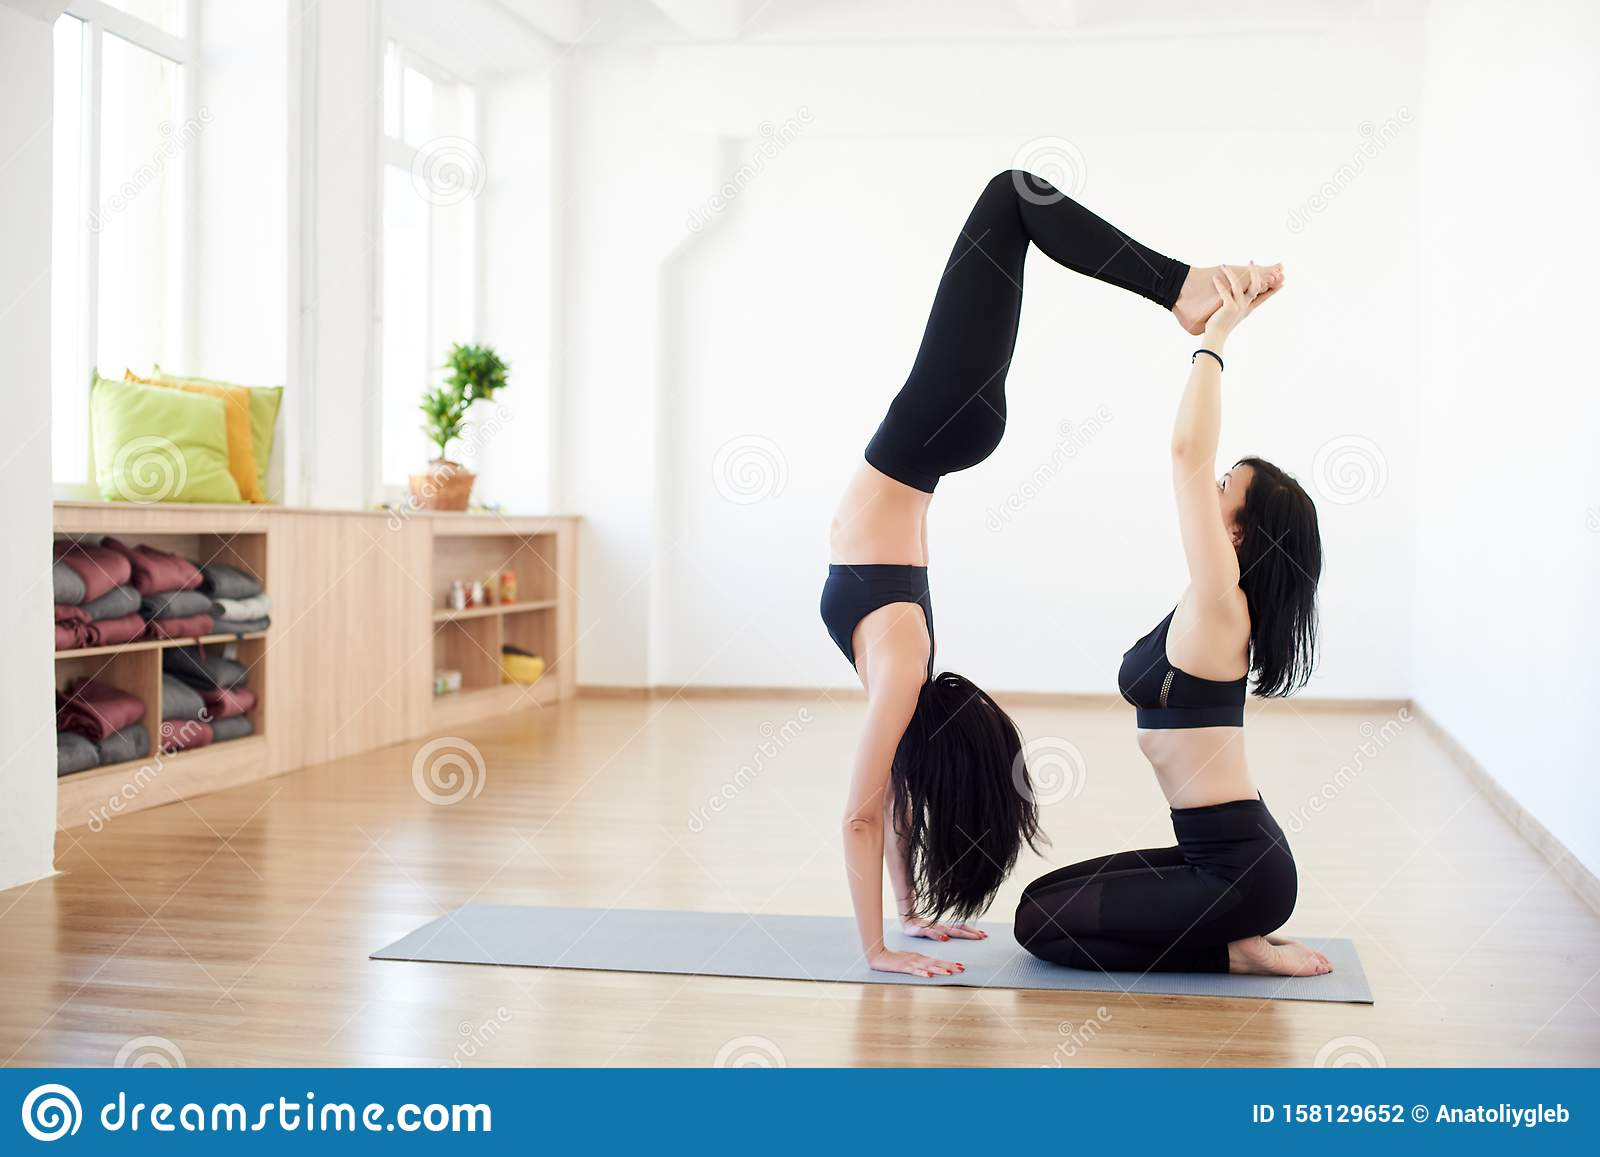 Partner Yoga. Side View Of Flexible Women Helping Each Other